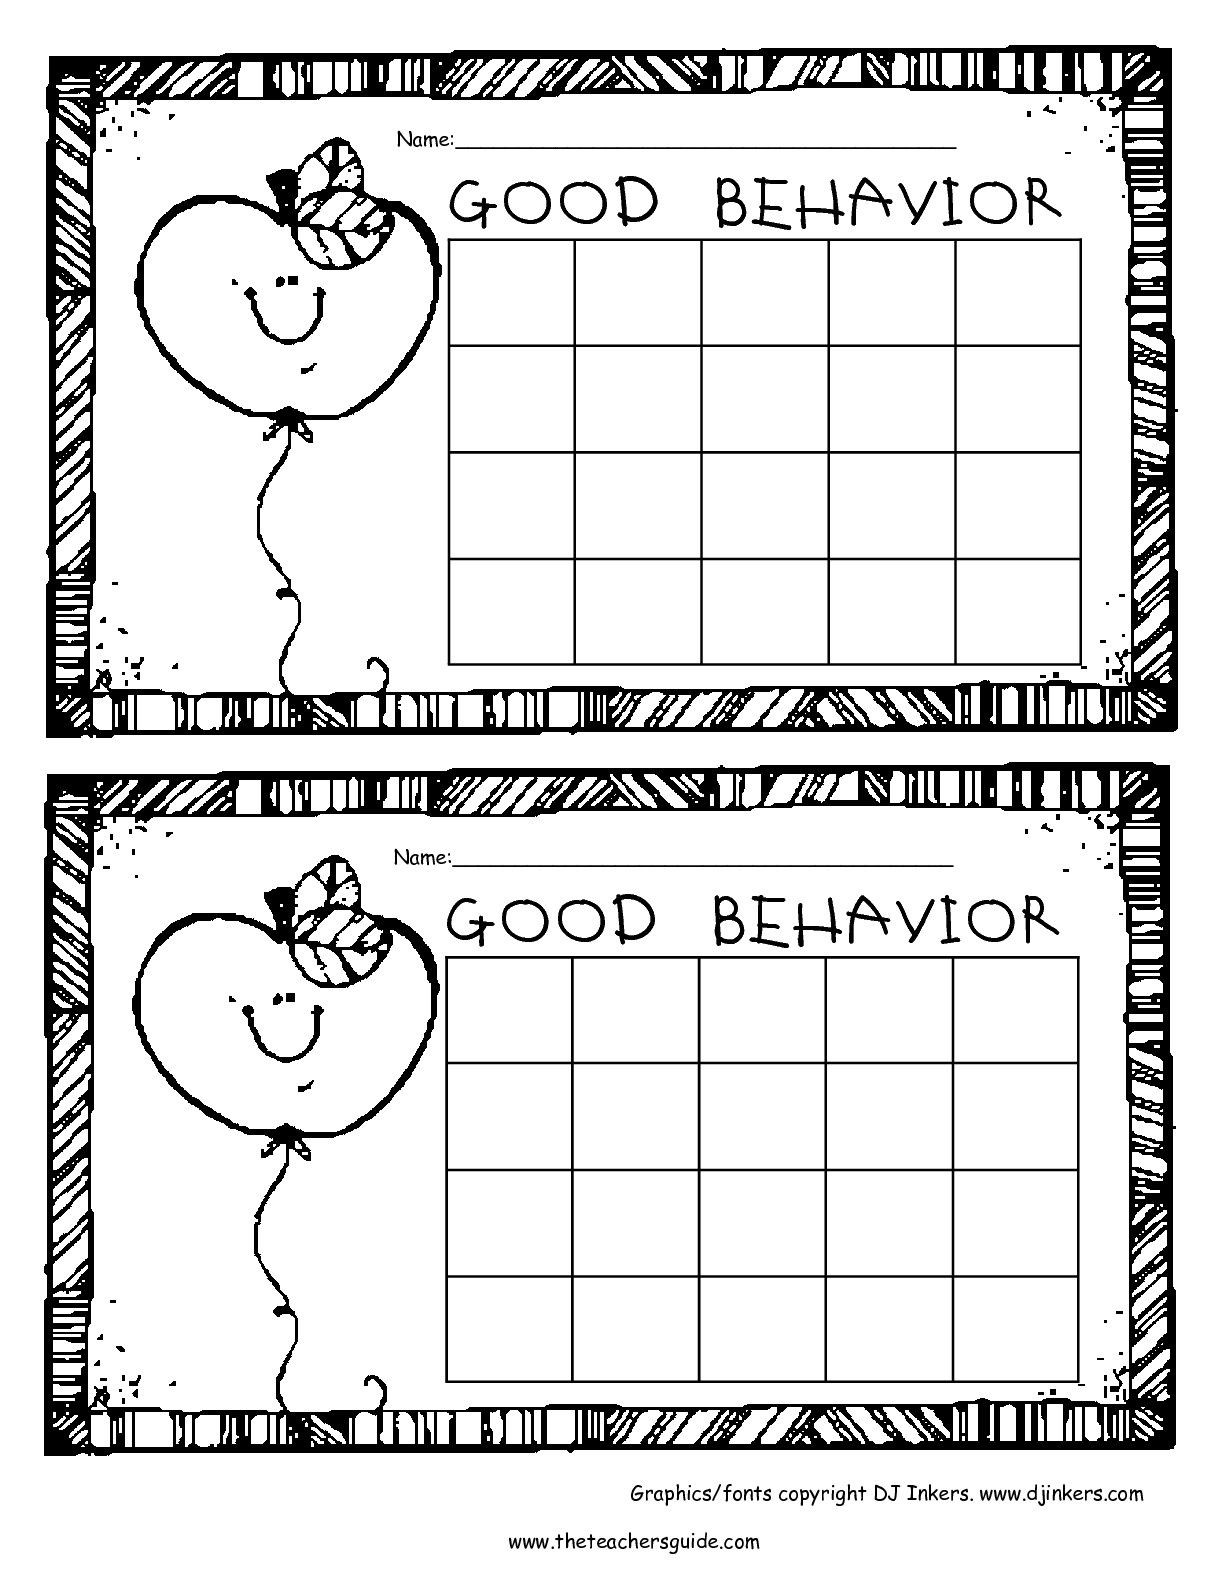 Expected and Unexpected Behaviors Worksheet